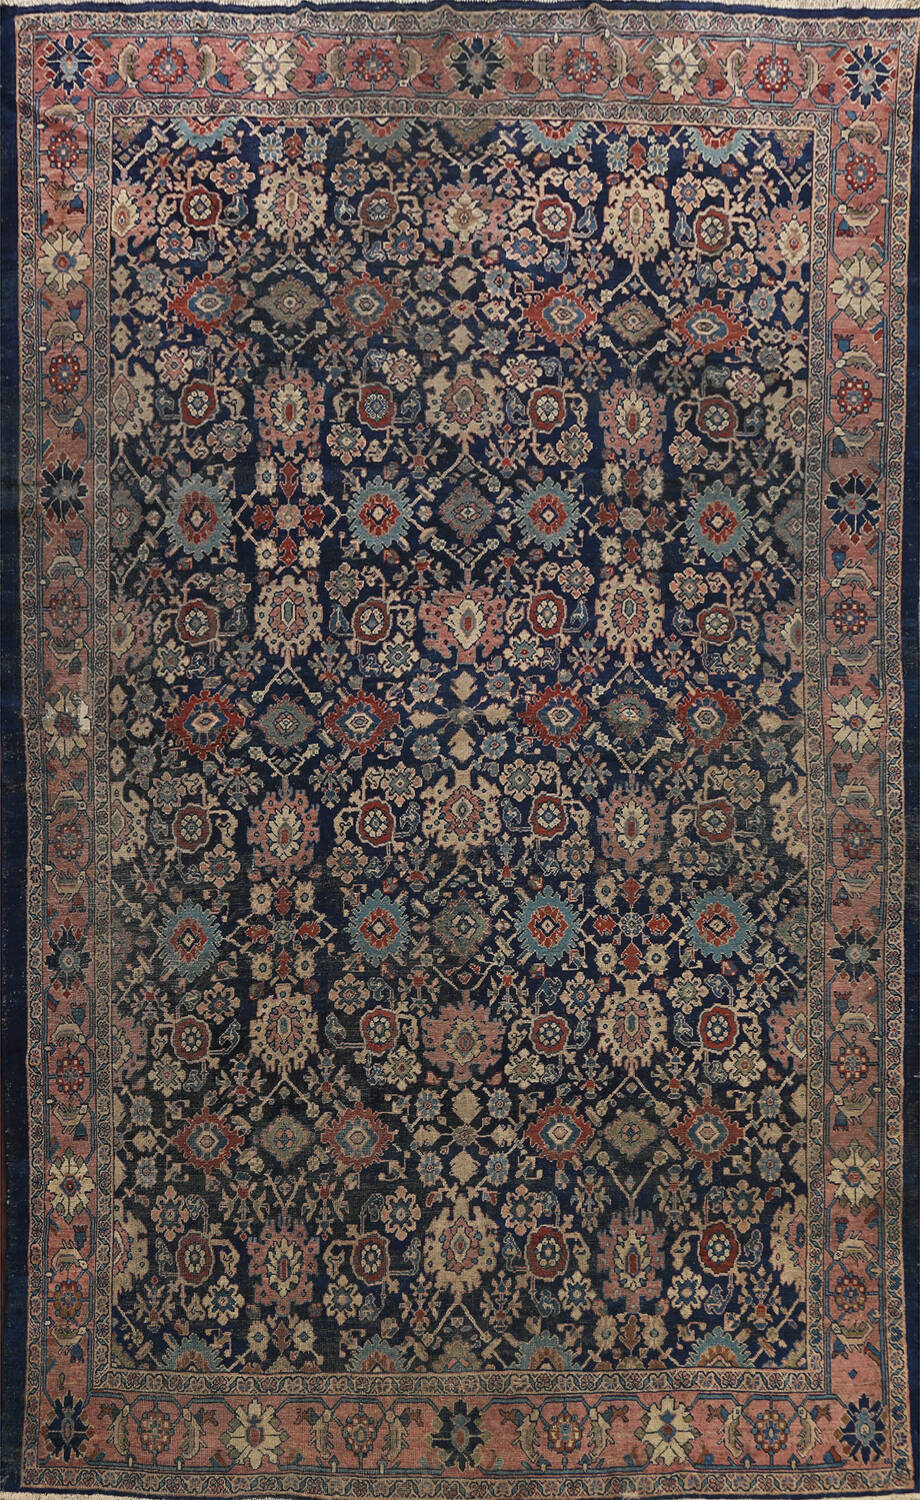 Pre-1900 Antique Vegetable Dye Sultanabad Persian Area Rug 10x13 image 1